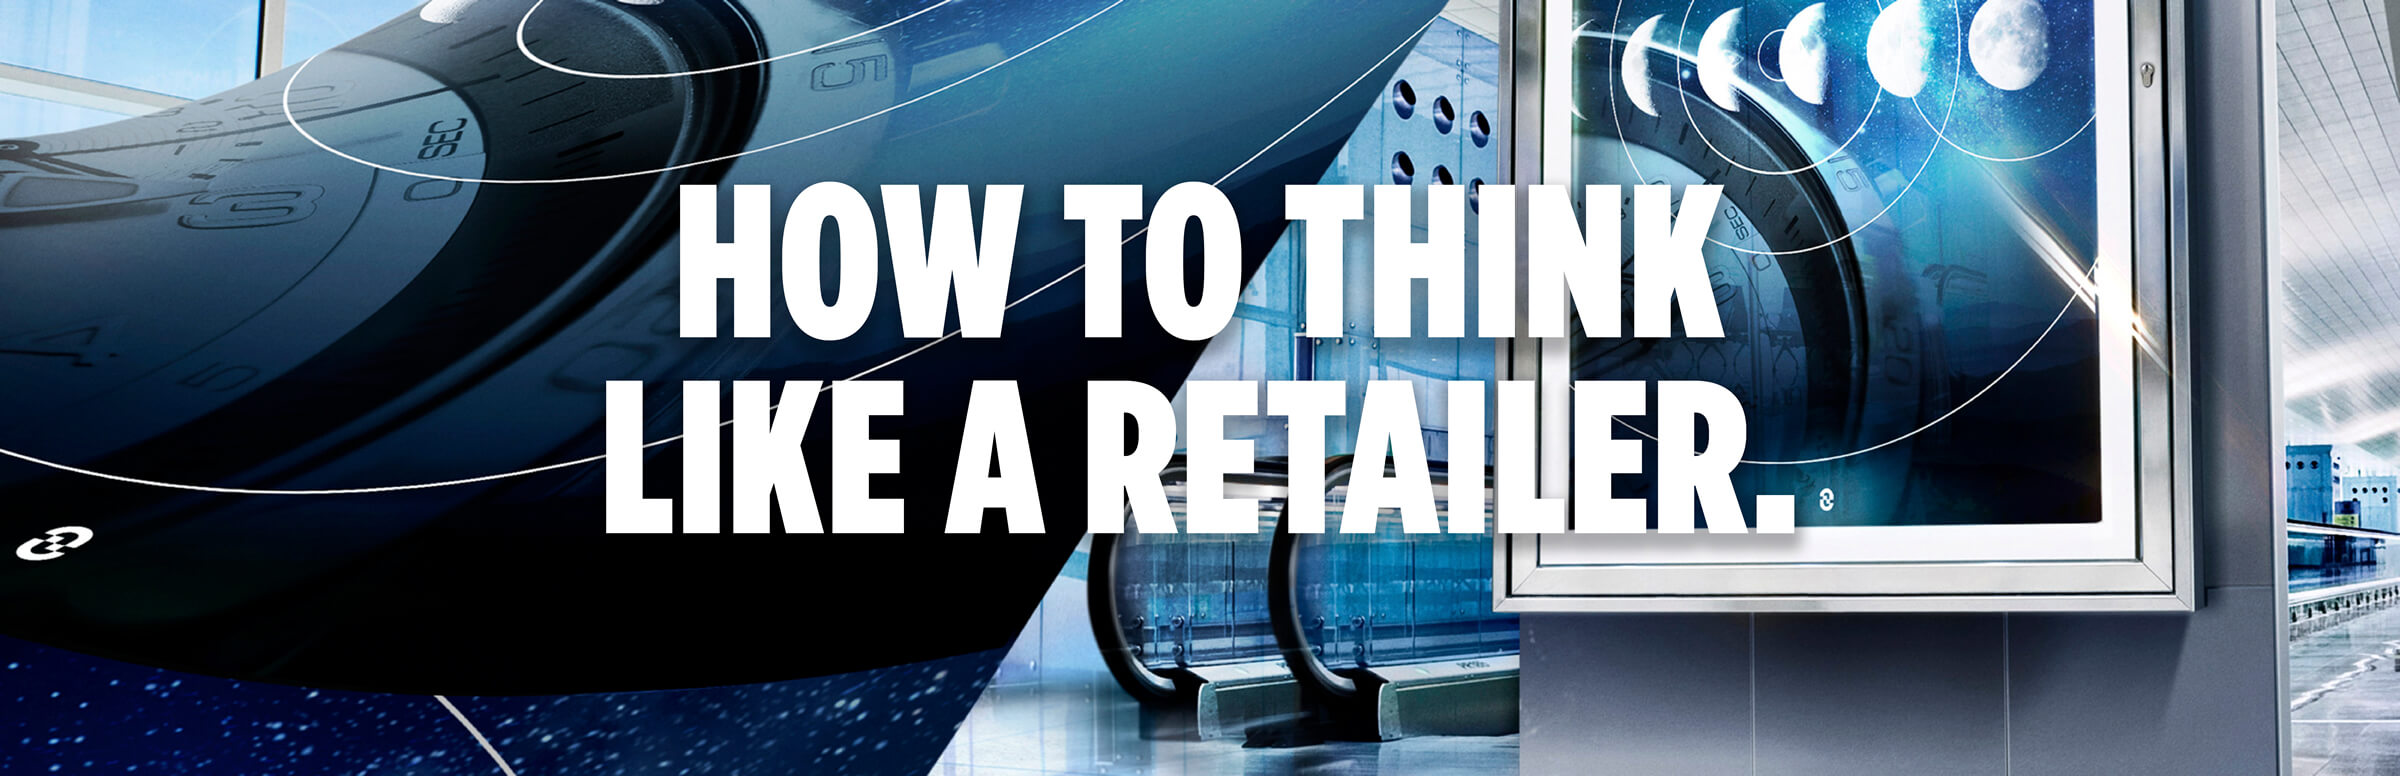 How To Think Like A Retailer